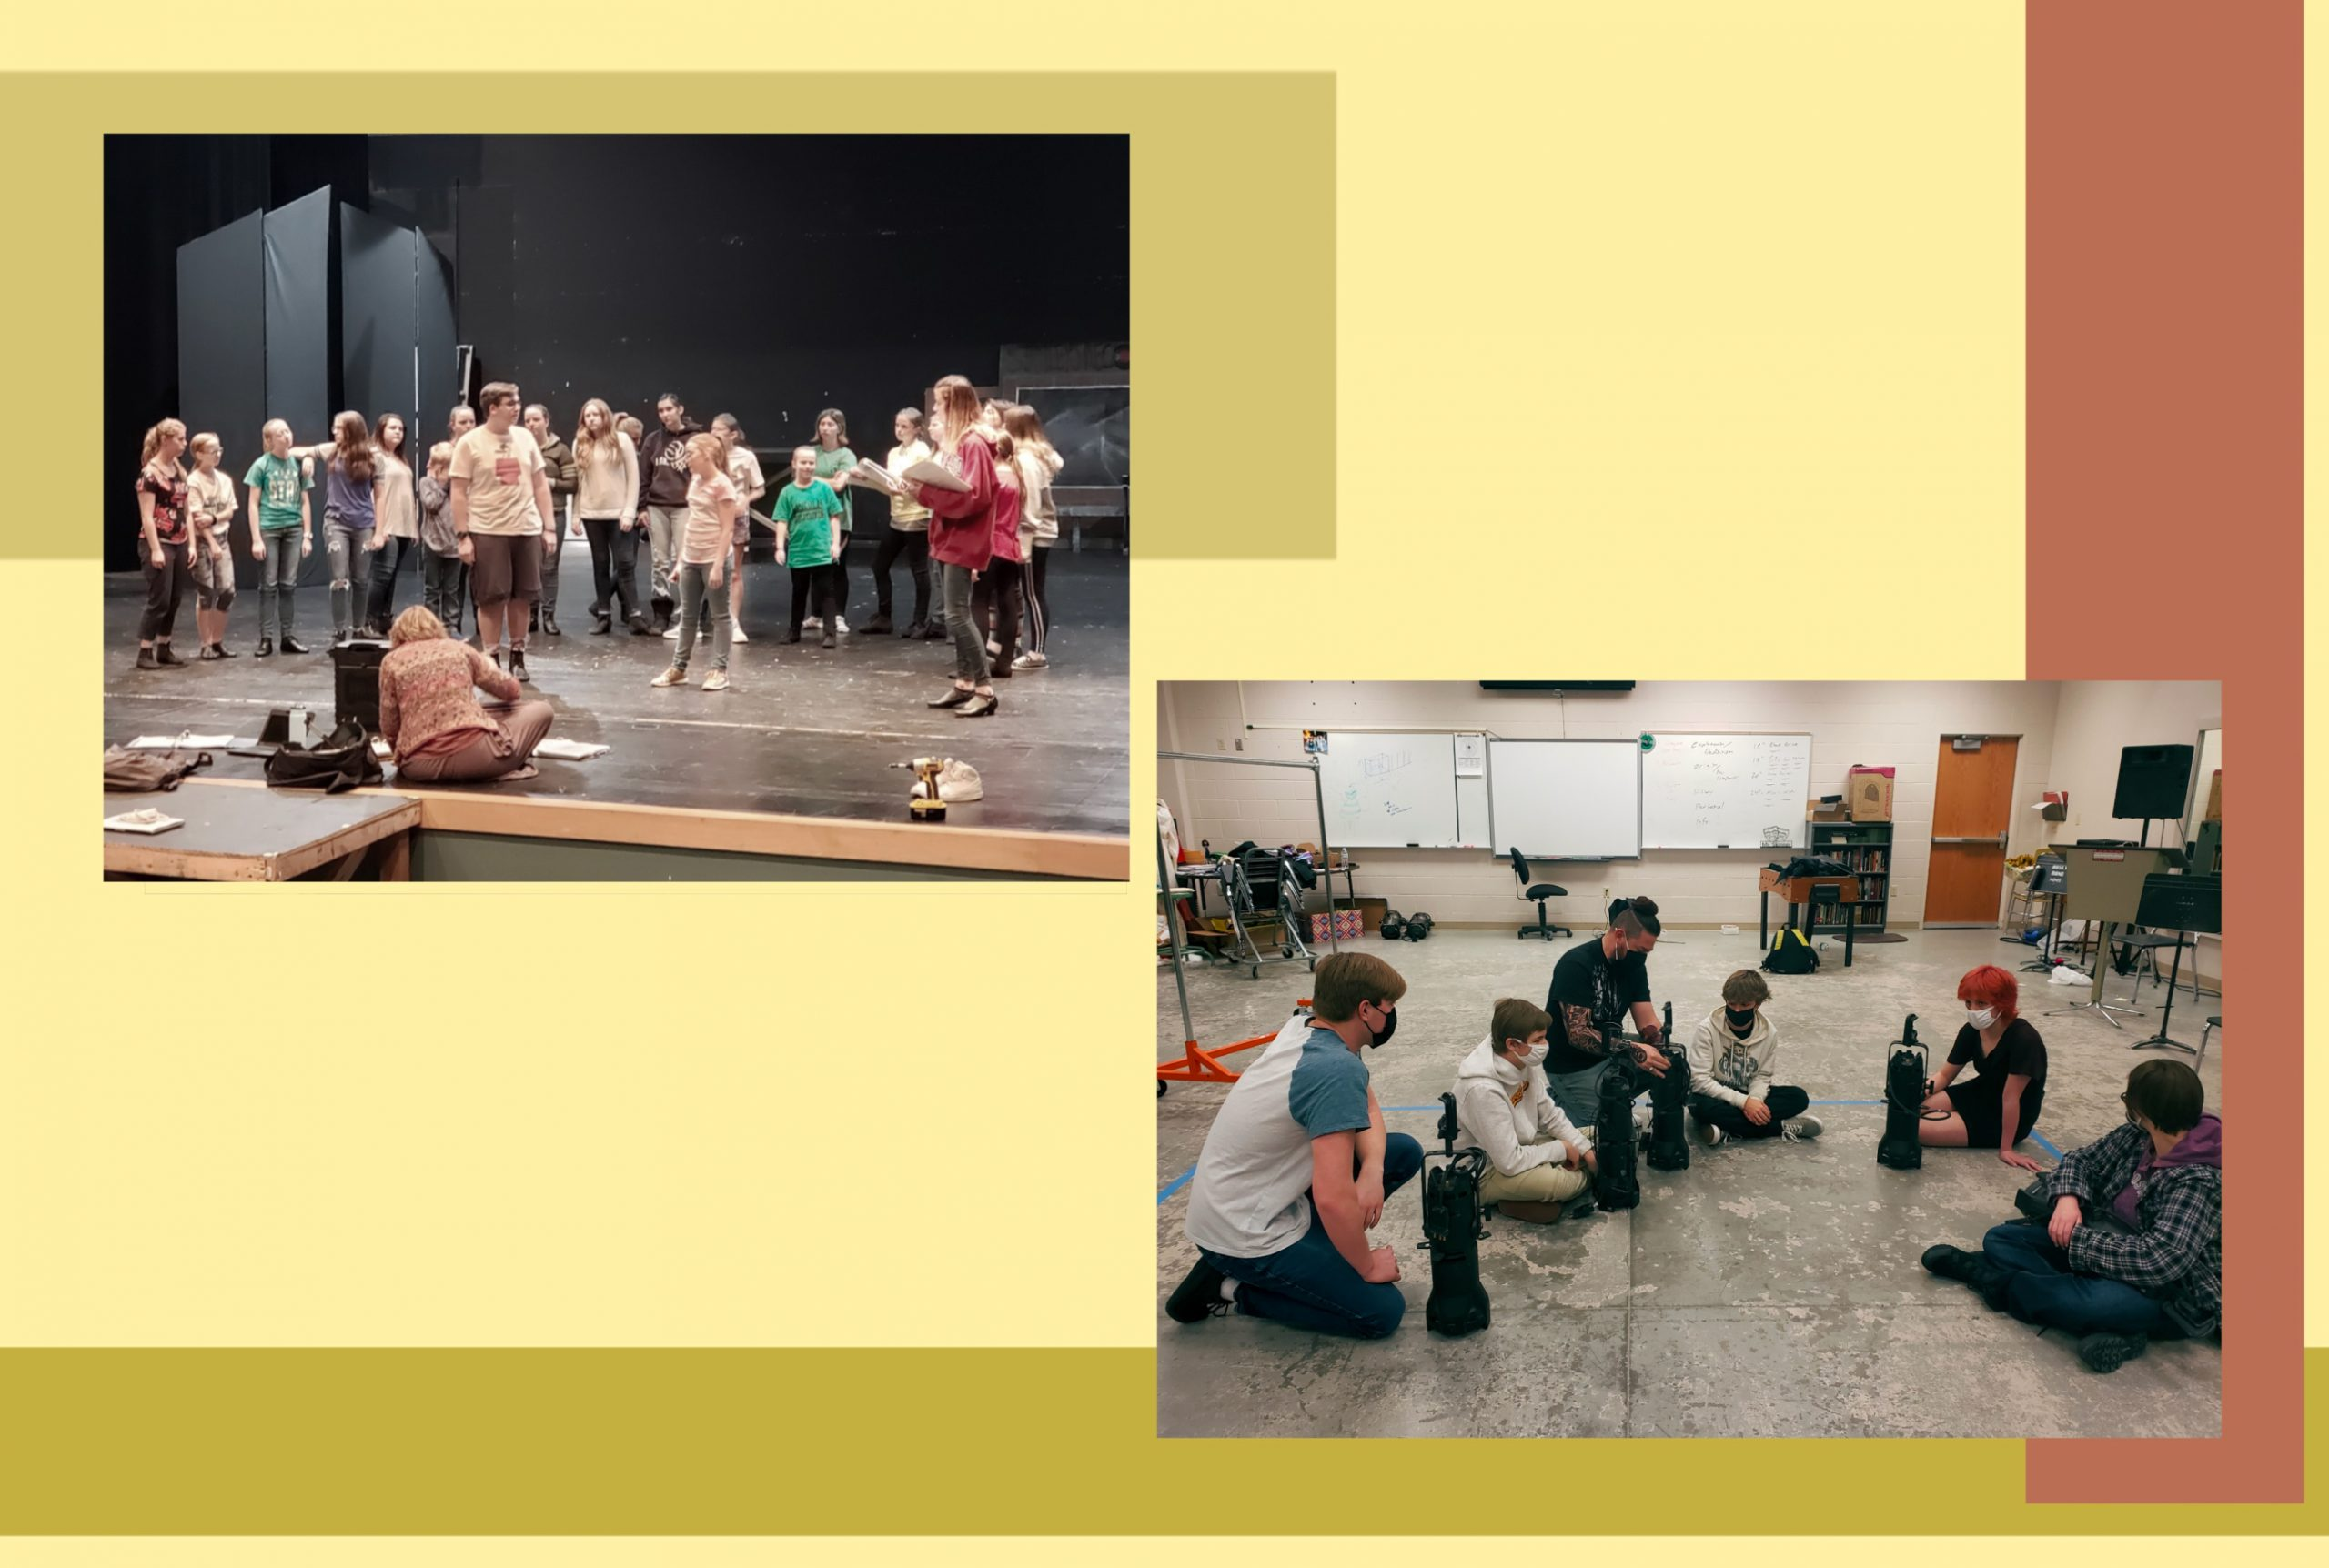 A collage of 2 images - 1 has many students huddled together practicing on stage, The second image has fewer students wearing masks rehearsing in a room.